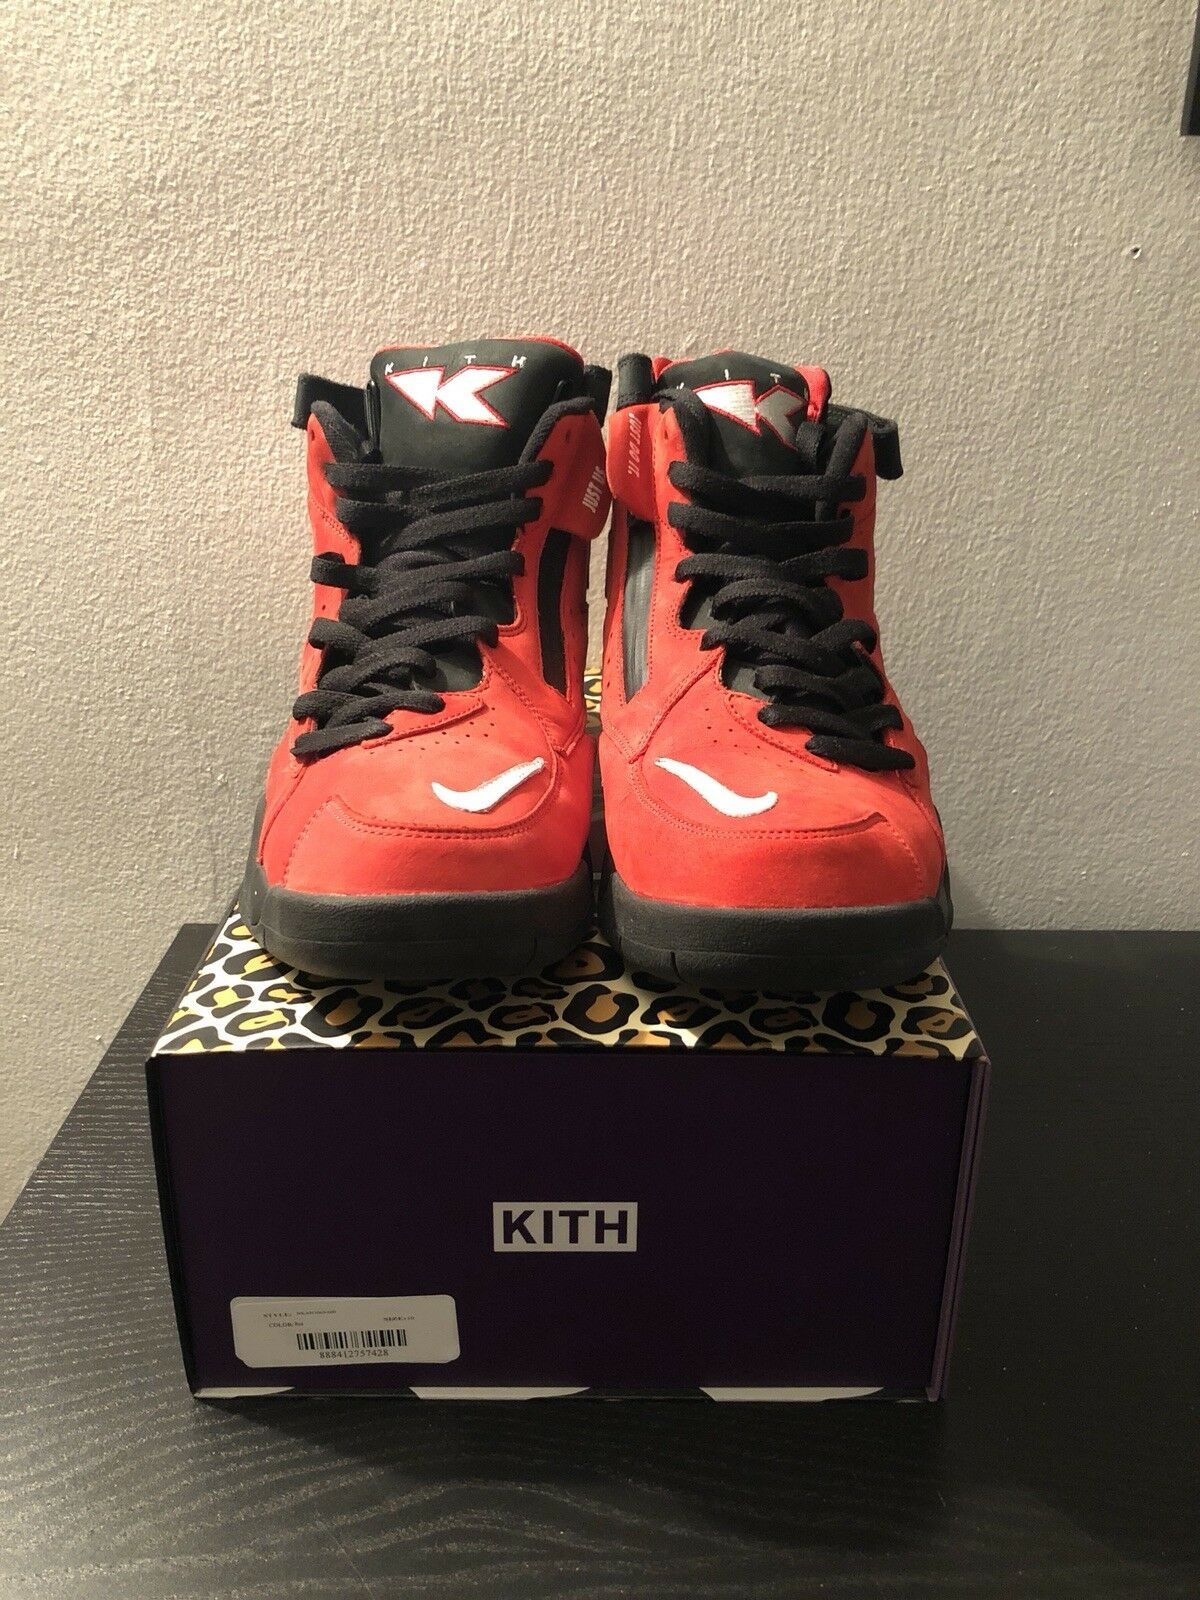 """Kith X Nike Scottie Pippen Air Maestro II High """"Red"""" size 10"""